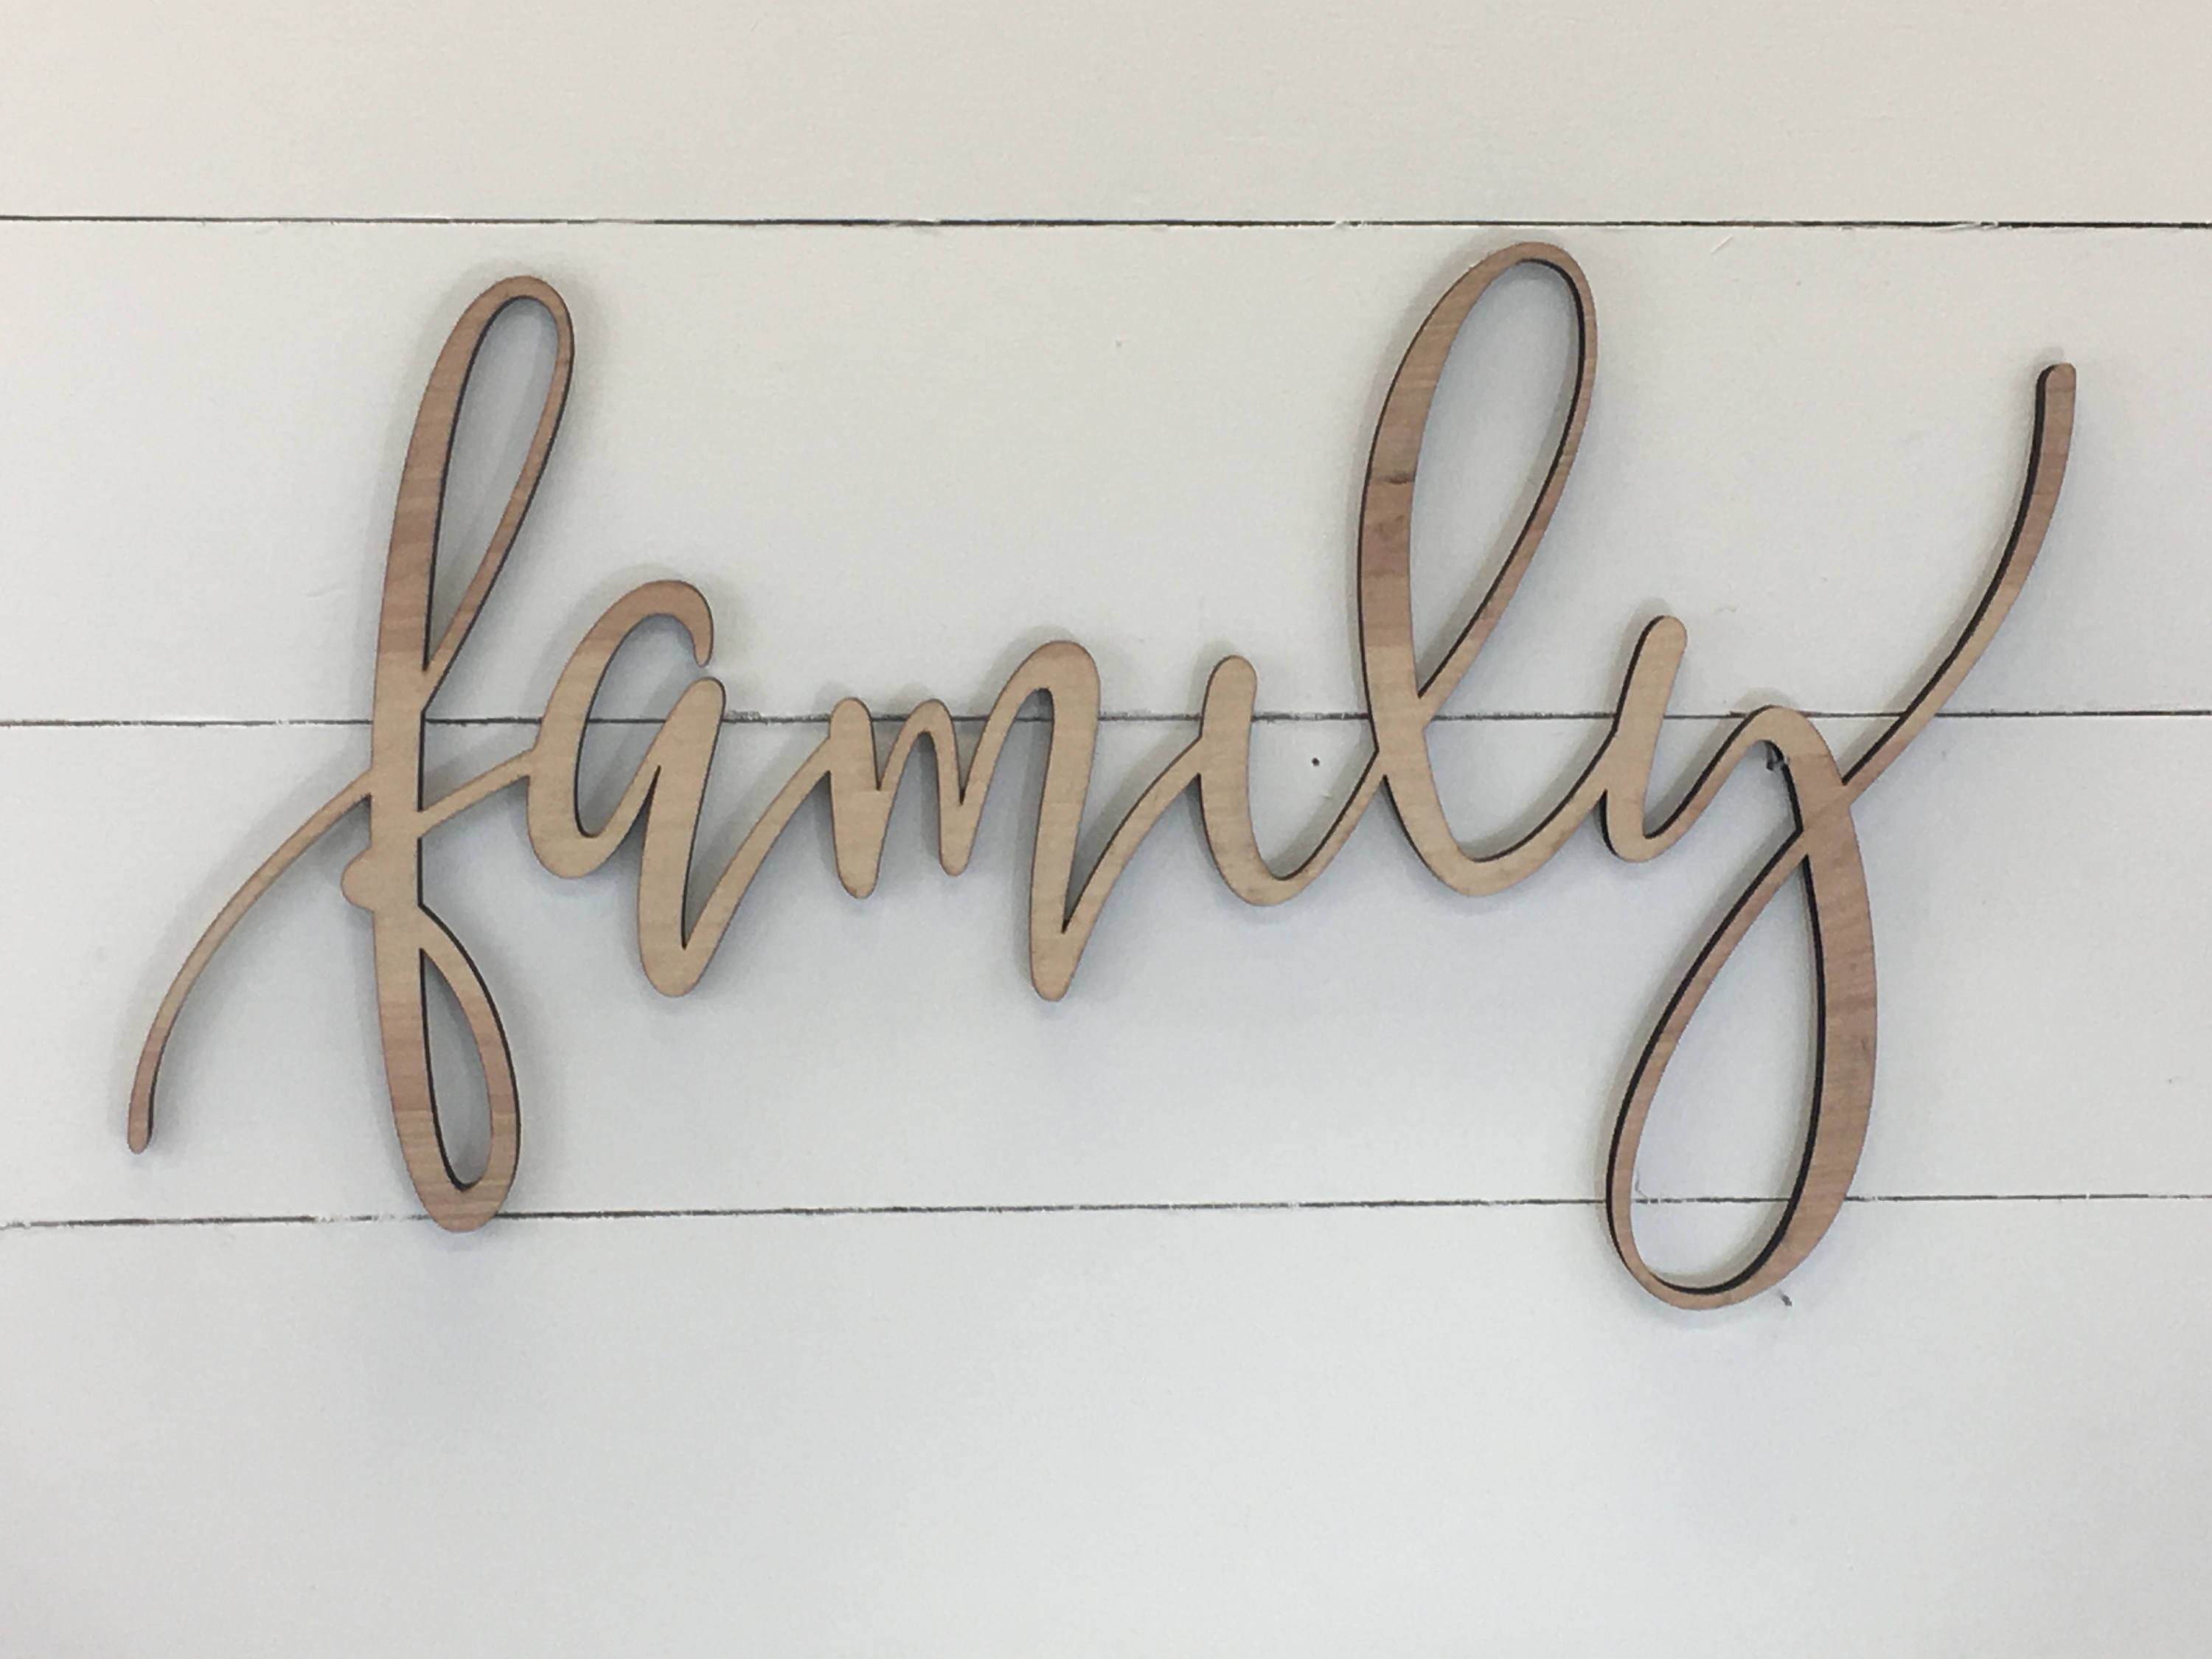 Items Similar To Just Smile Wooden Words Decorative Wood Letters With Newest Wooden Words Wall Art (Gallery 6 of 30)